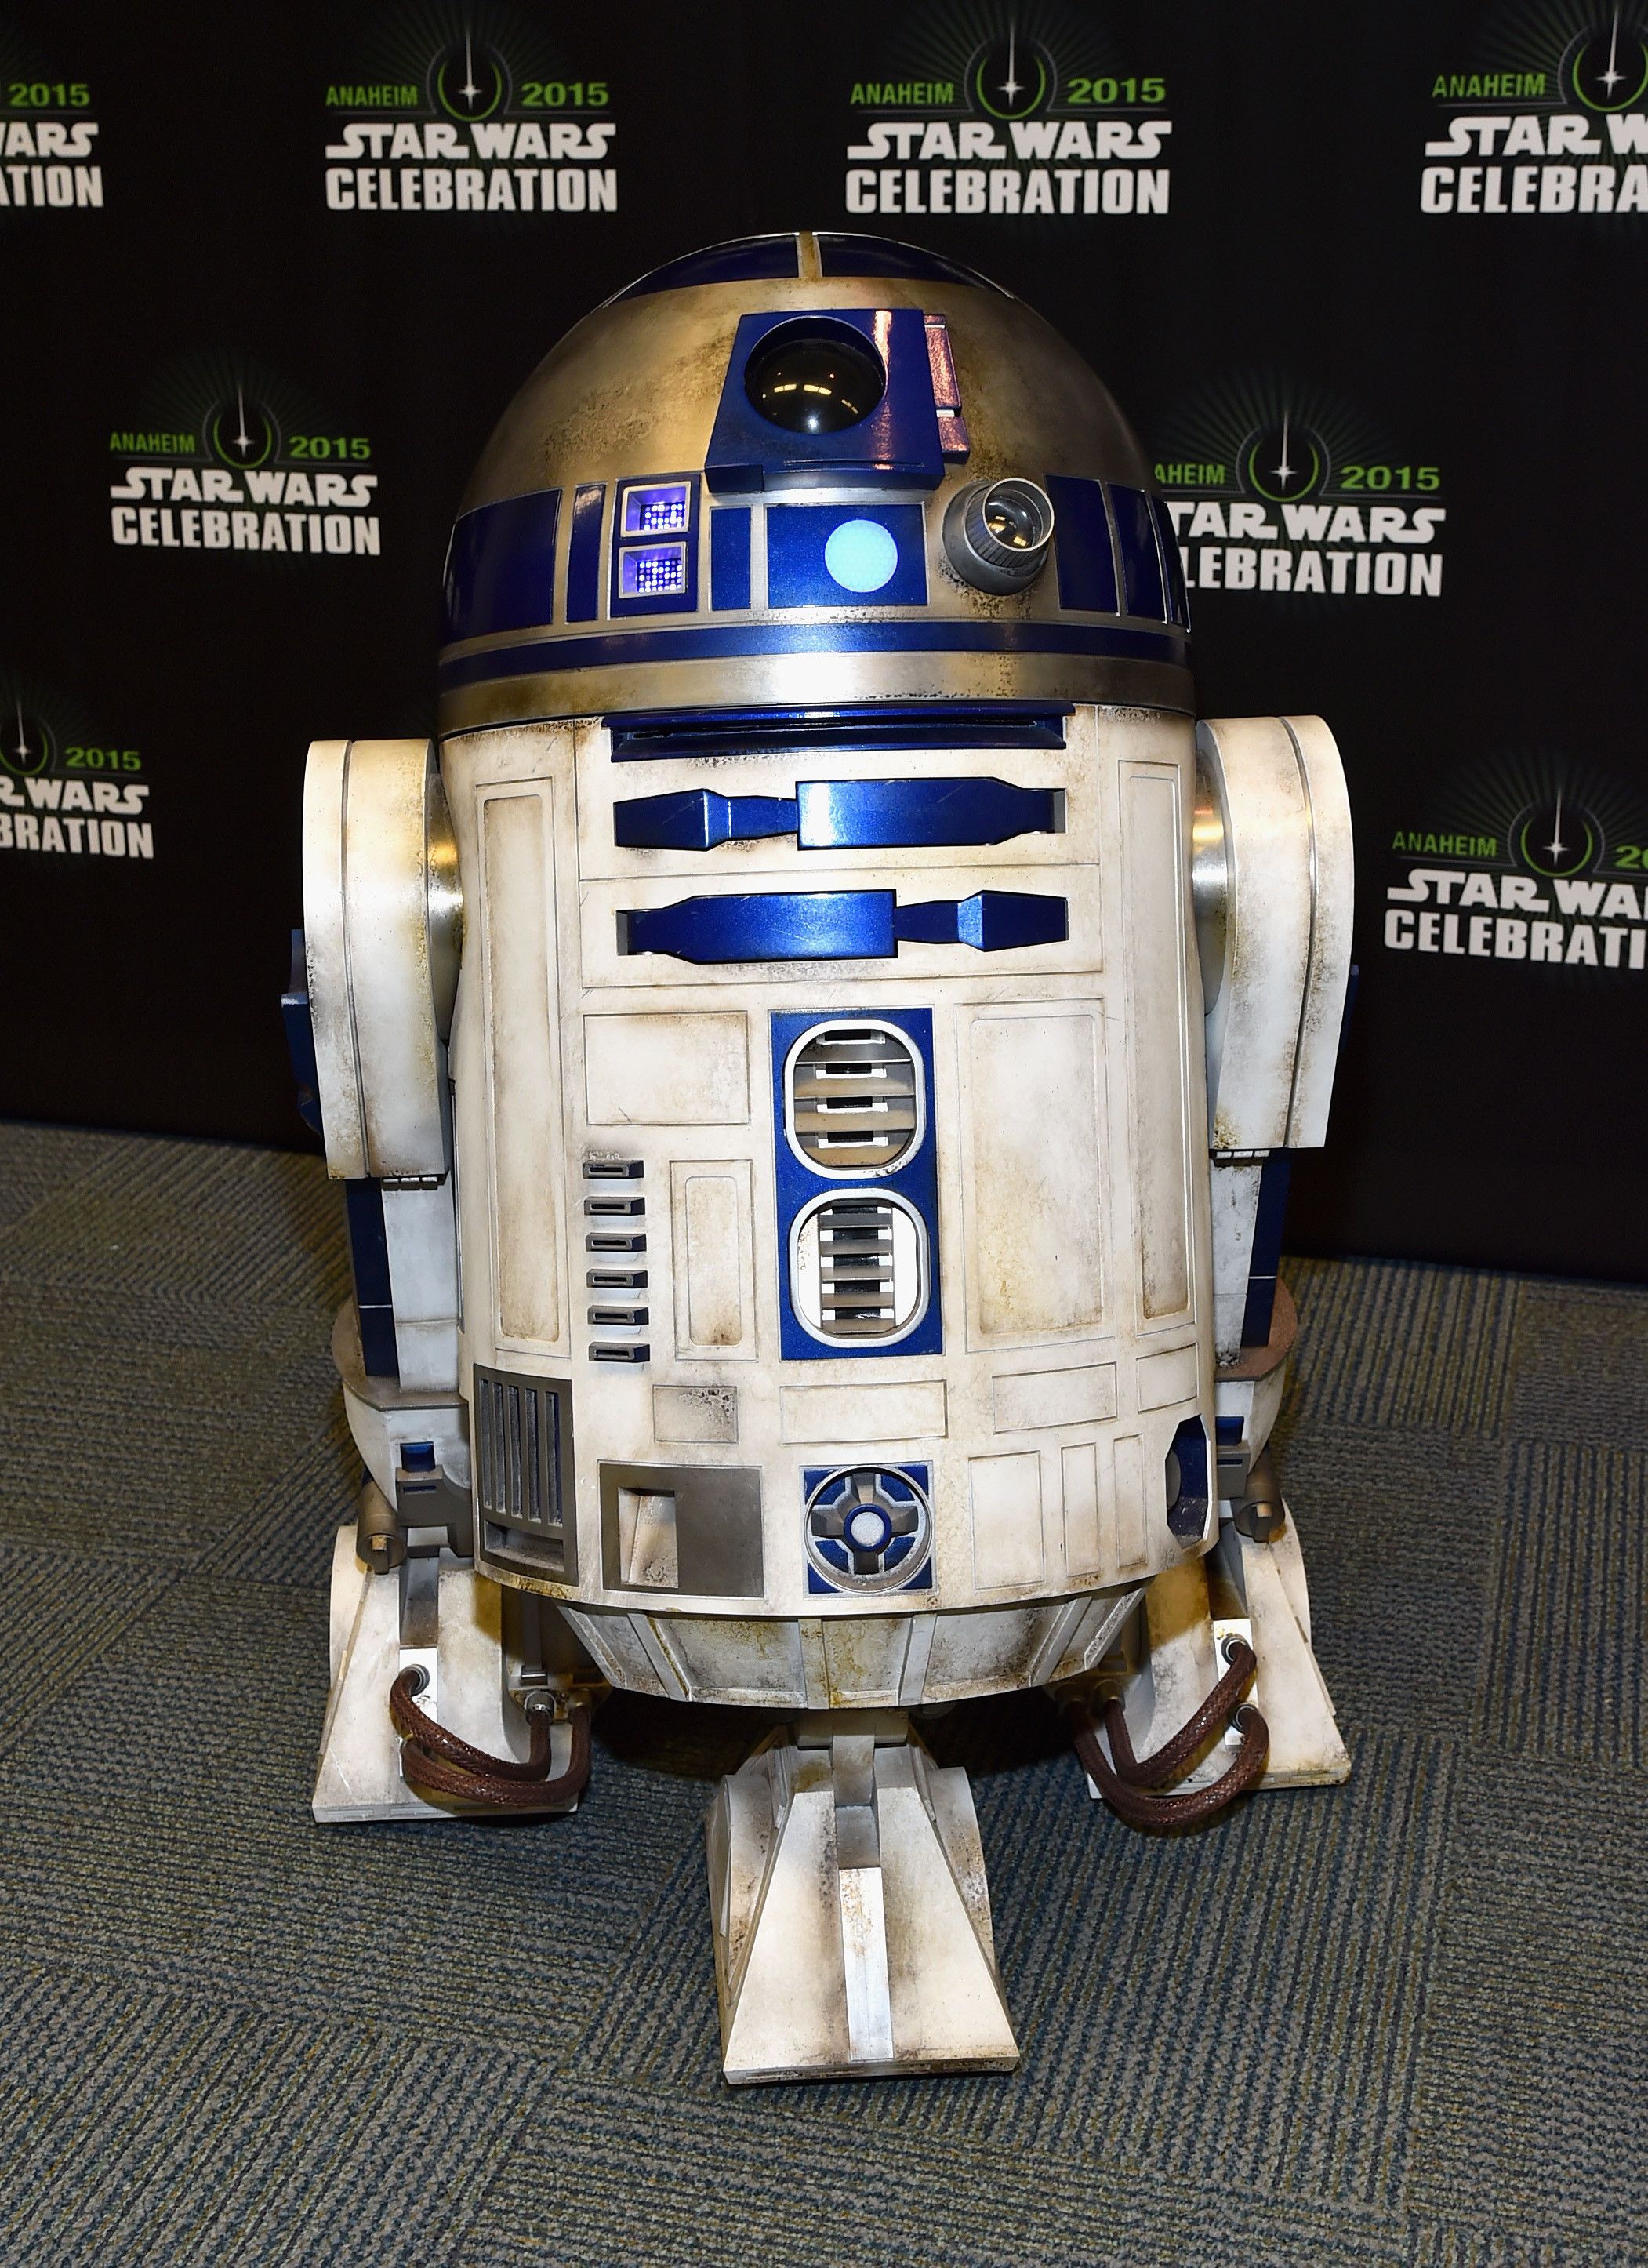 2102x2892 Star Wars images R2D2 at The Star Wars Celebration HD wallpaper and  background photos